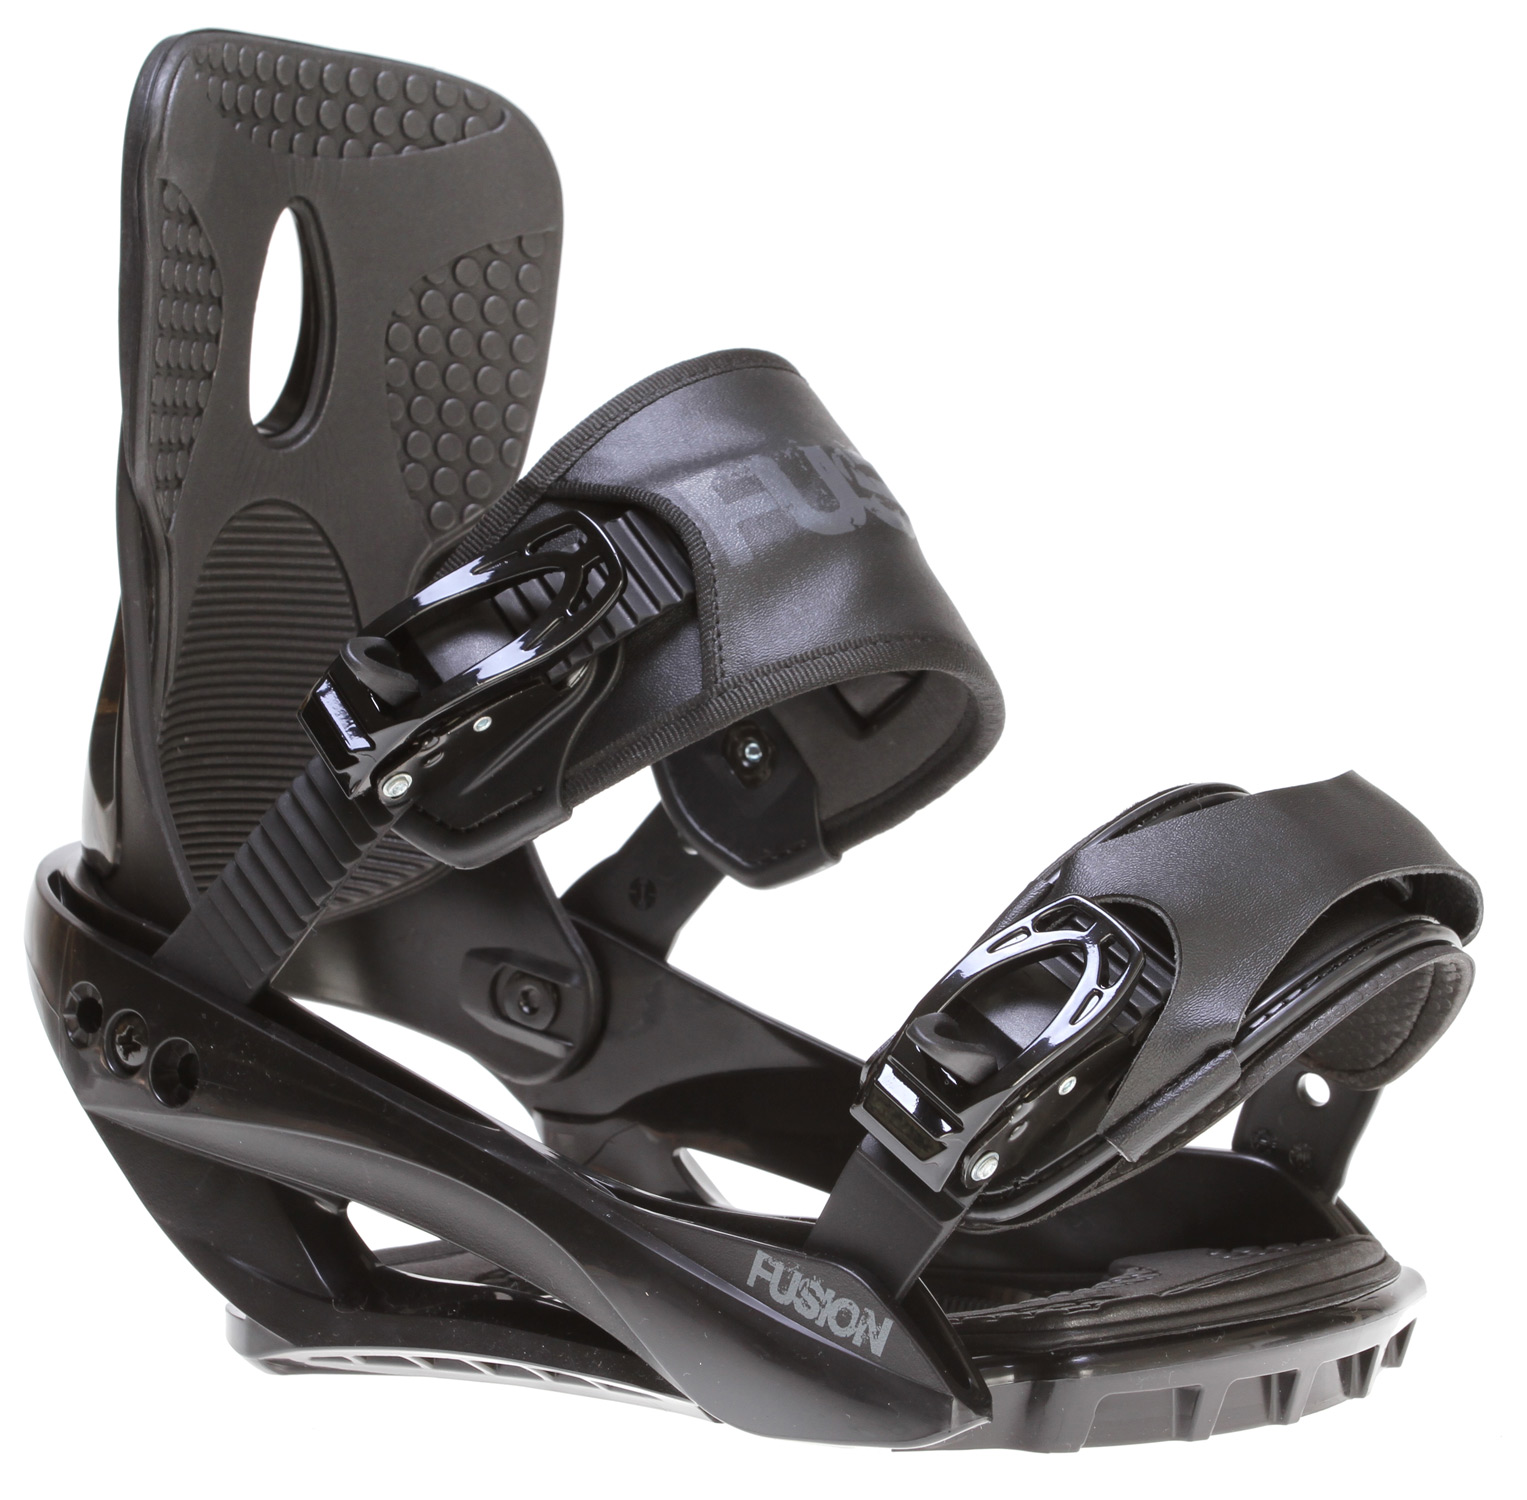 Snowboard These bindings were made for stomping and that is just what they will do! This strap contraption features a fiberglass reinforced plastic baseplate, lightweight cored highback and comfortable sewn straps. With a heavily padded footbed, metal ratchets and quick adjust hardware these beasts are ready to shred the slopes but not your wallet.Key Features of the Sapient Fusion Snowboard Bindings:Fiber reinforced nylon  Cored highback  Metal ratchets  Sewn straps with quick adjust ankle - $71.95